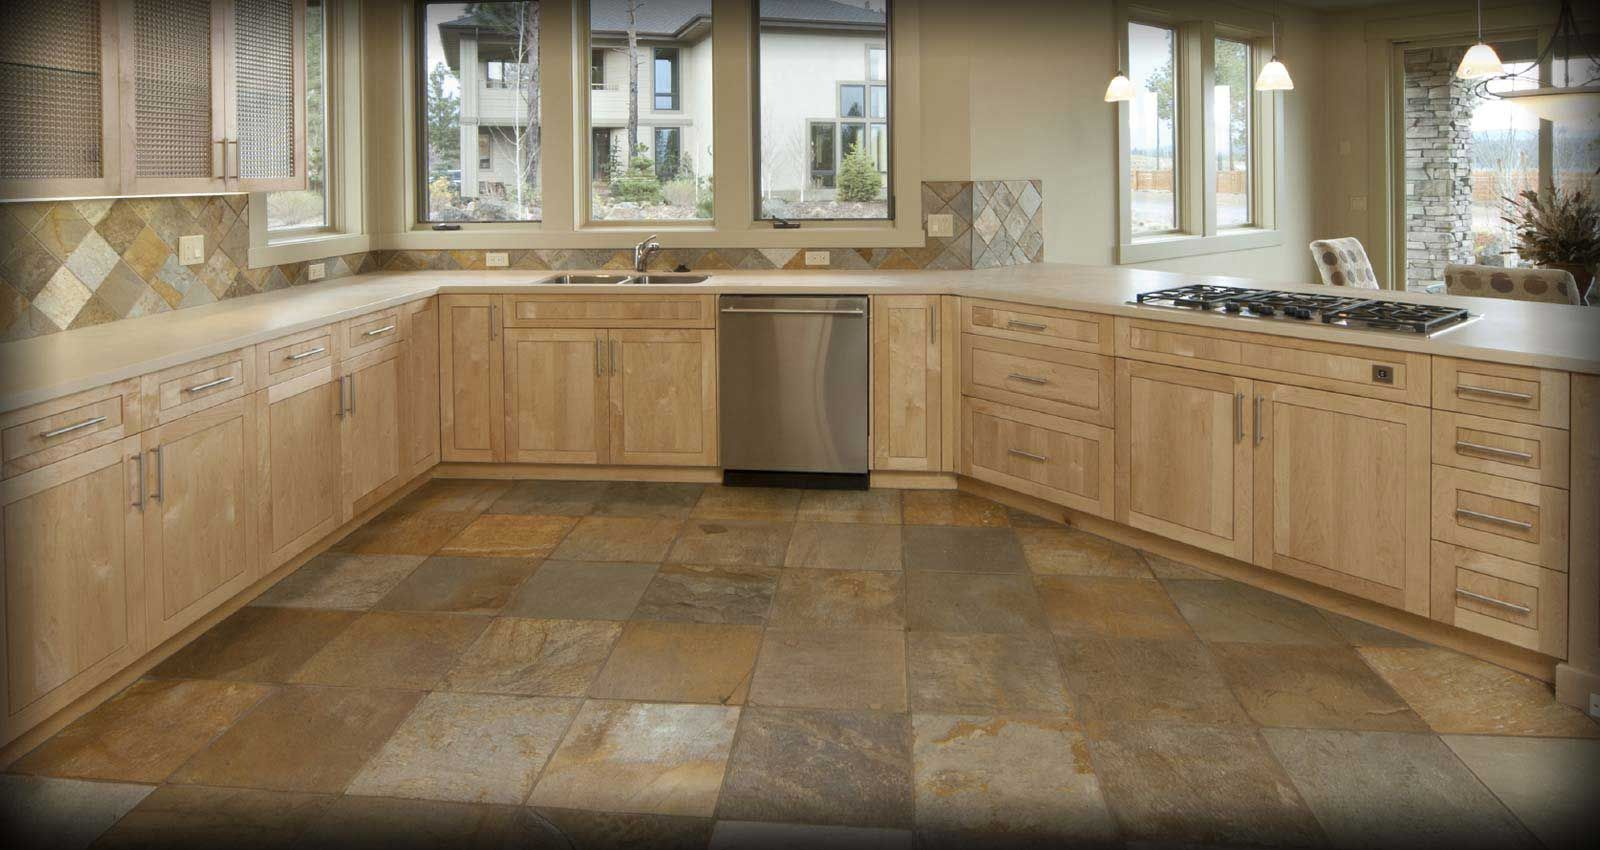 Stone Floors For Kitchen Kitchen Floor Ideas Full Size Of Tile Pattern Ideas For Kitchen